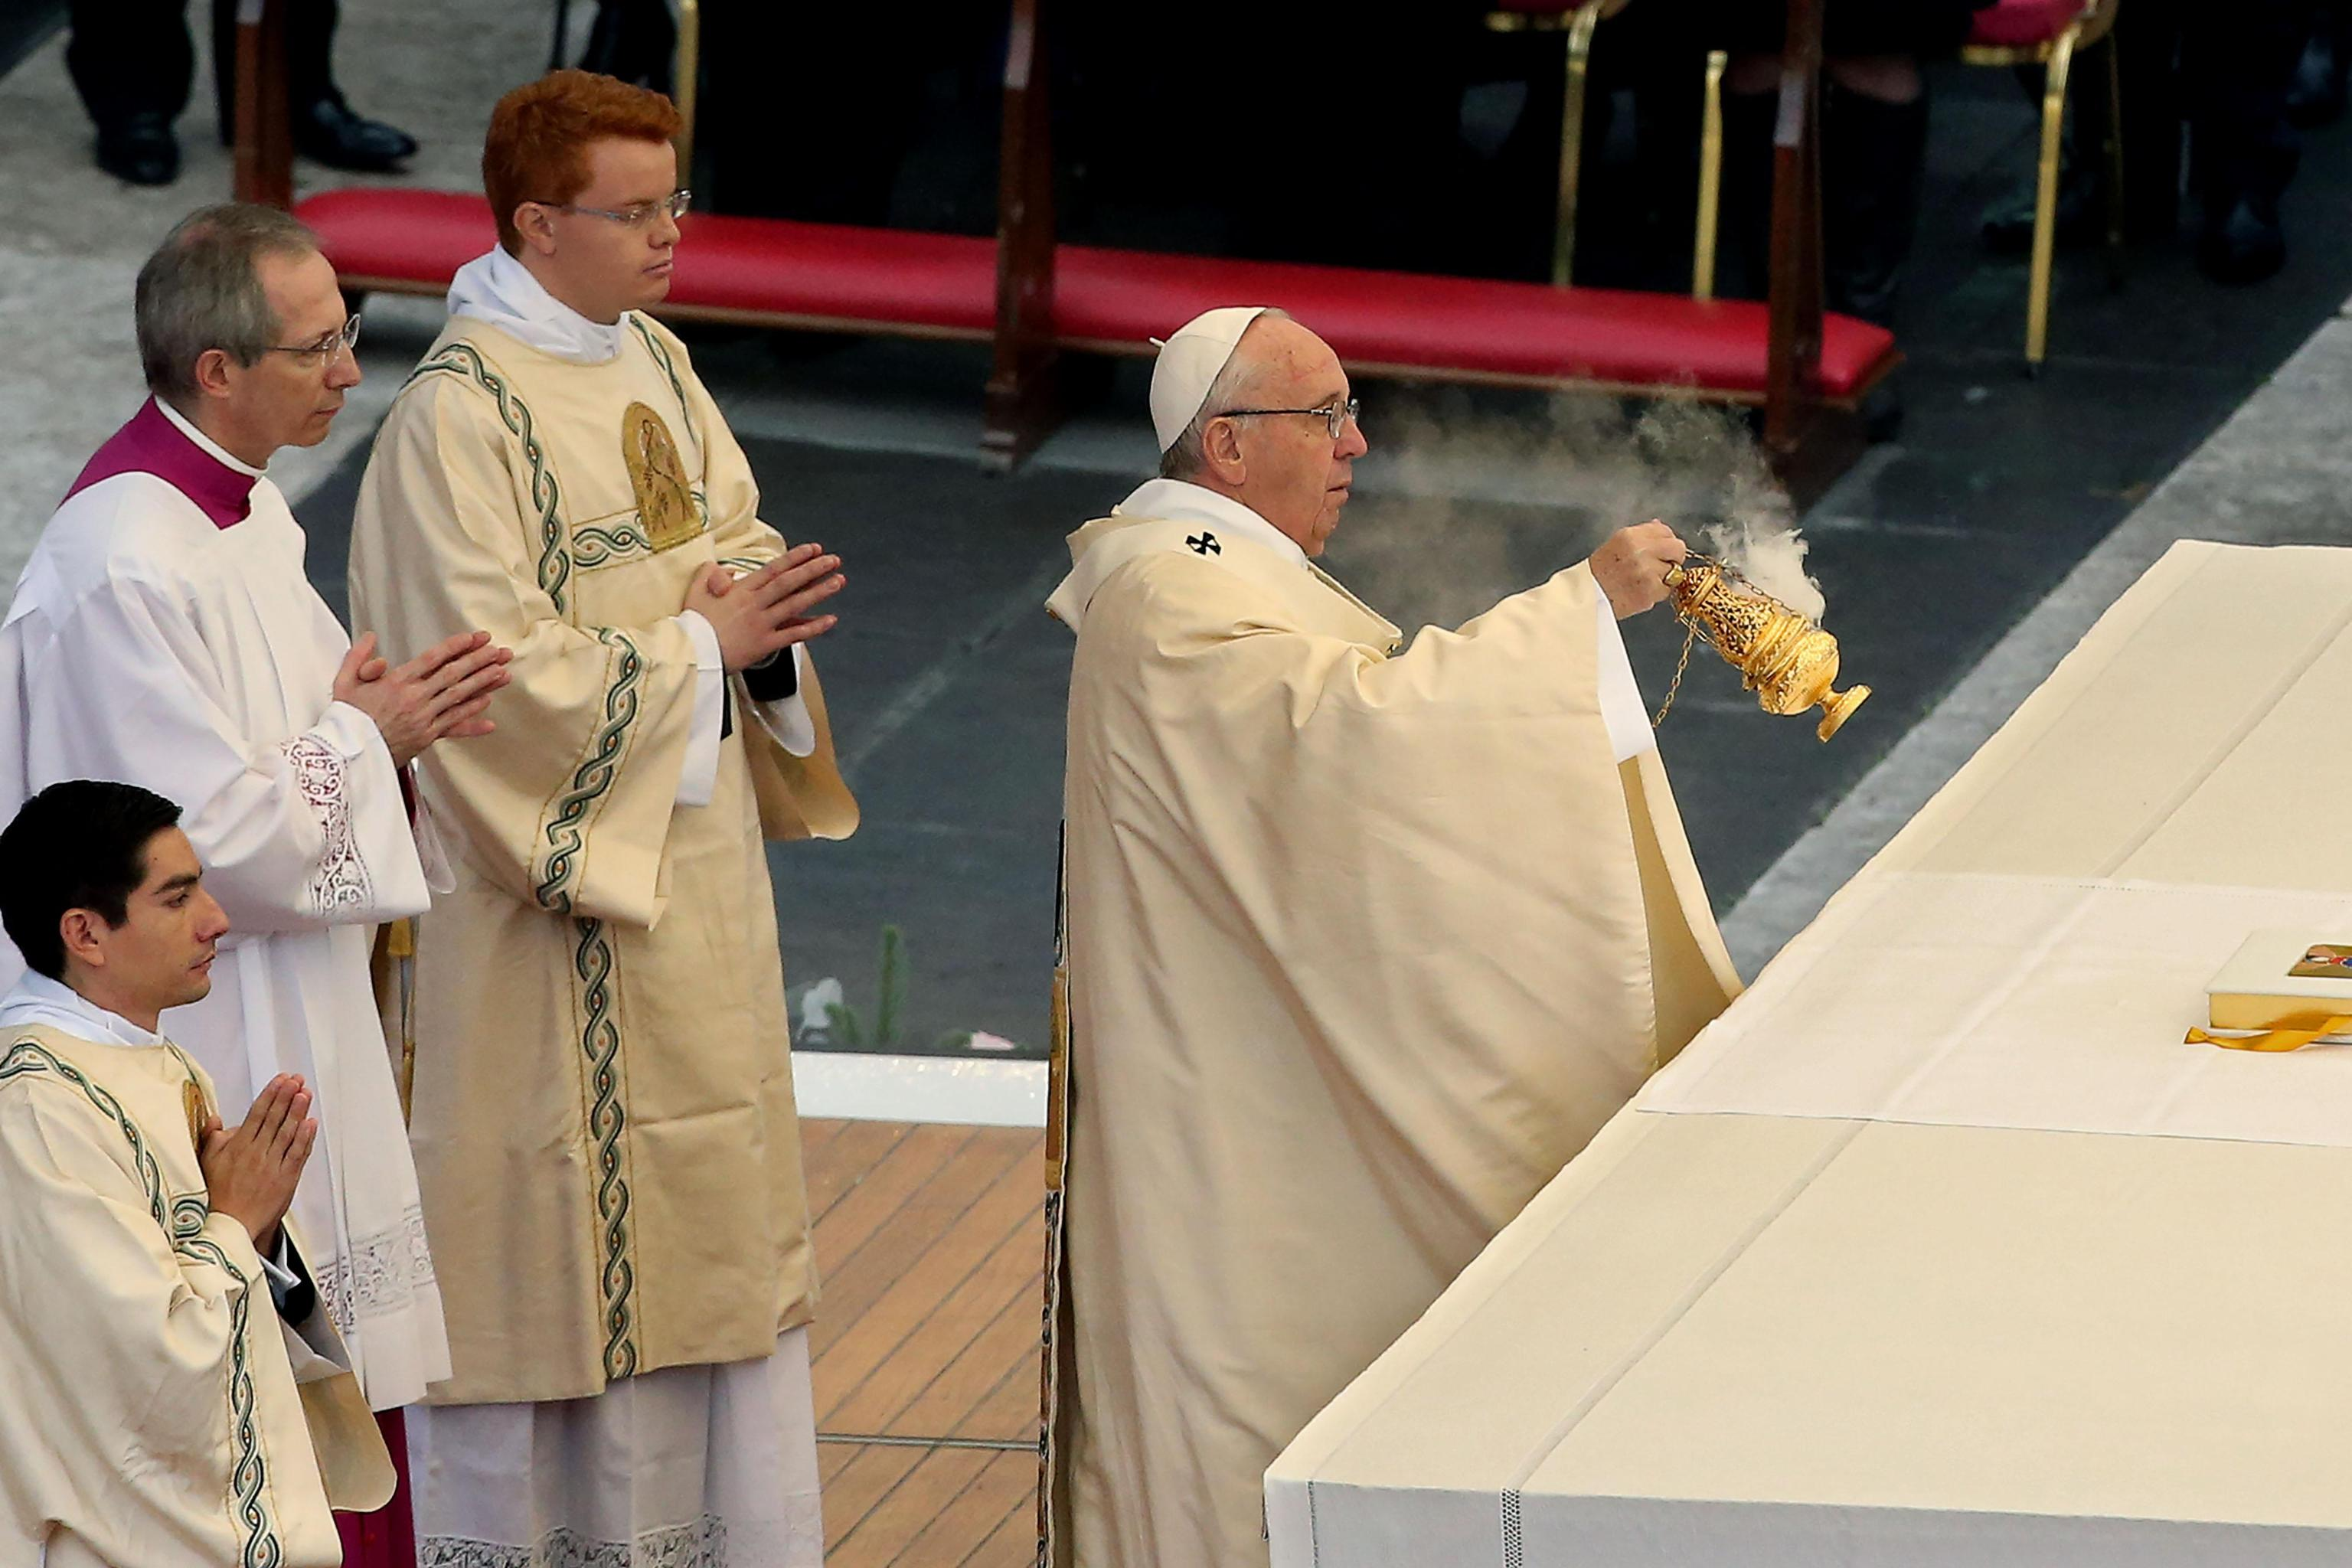 Pope Francis during the opening mass of the Jubilee of Mercy